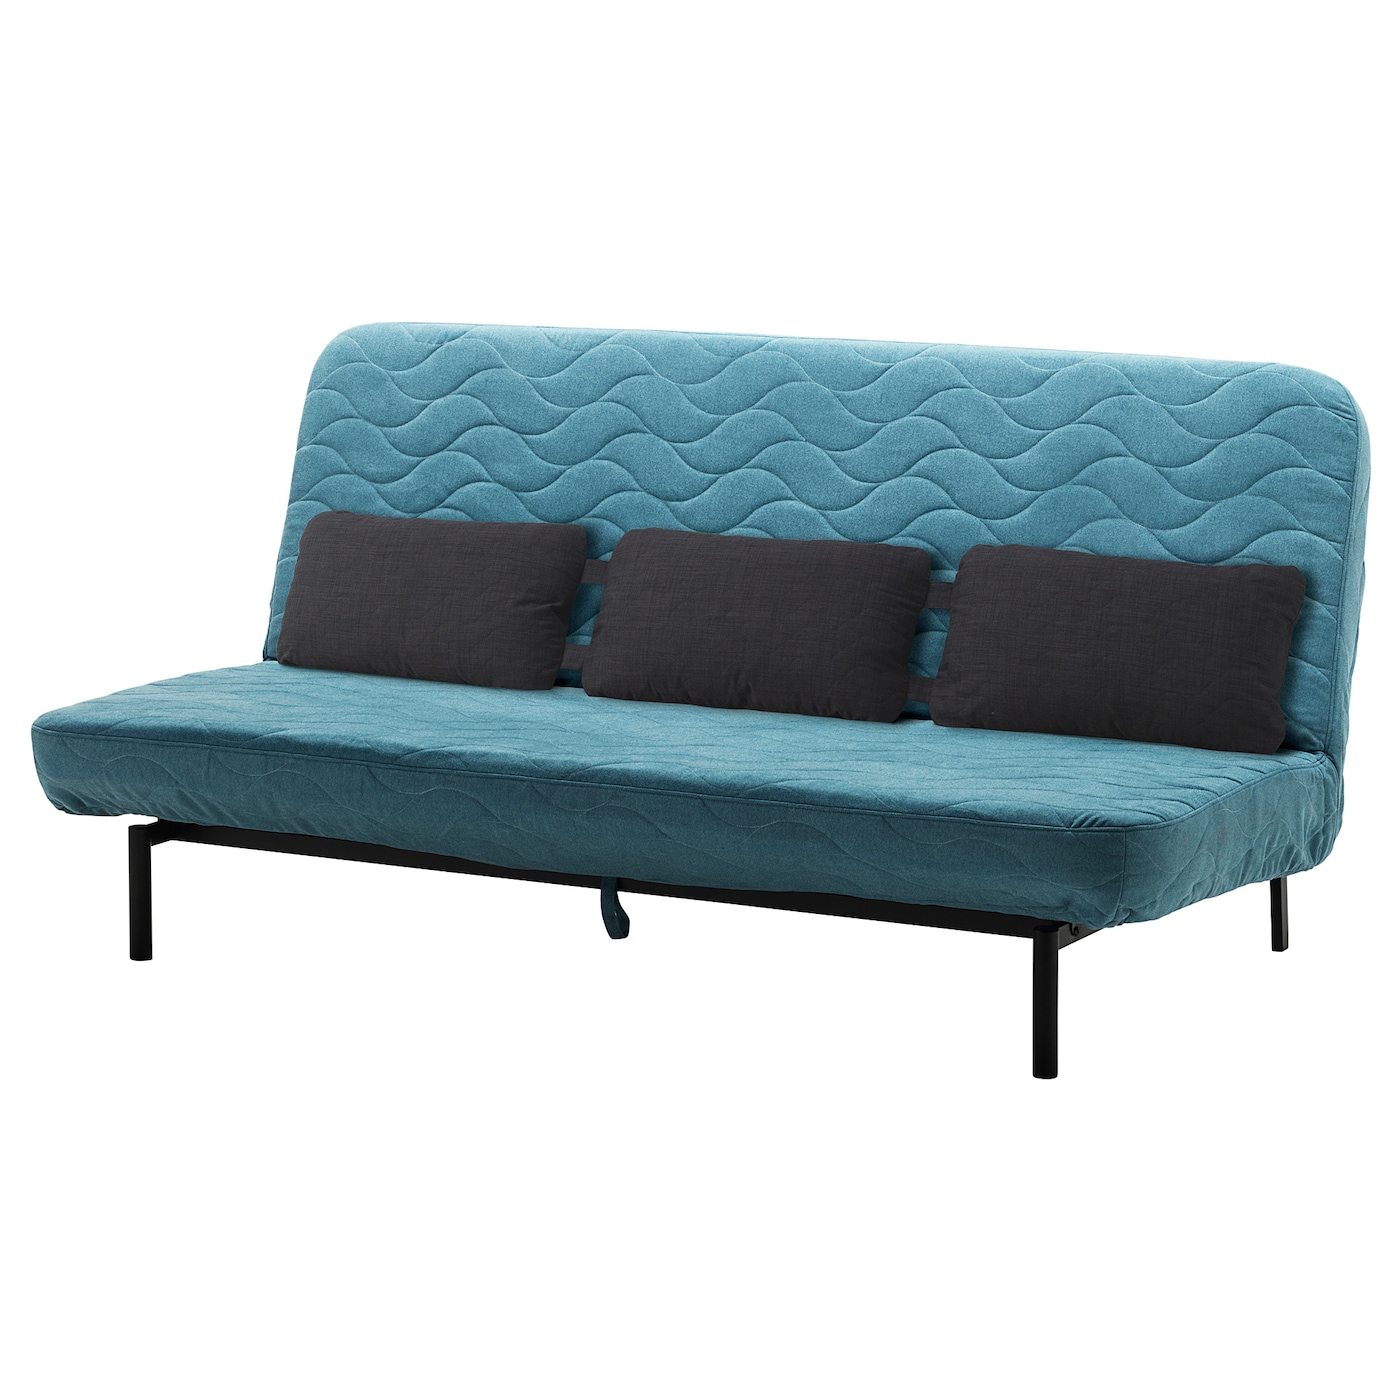 sofa beds corner sofa beds futons ikea rh ikea com Sofa Bed Costco IKEA Bedroom Furniture